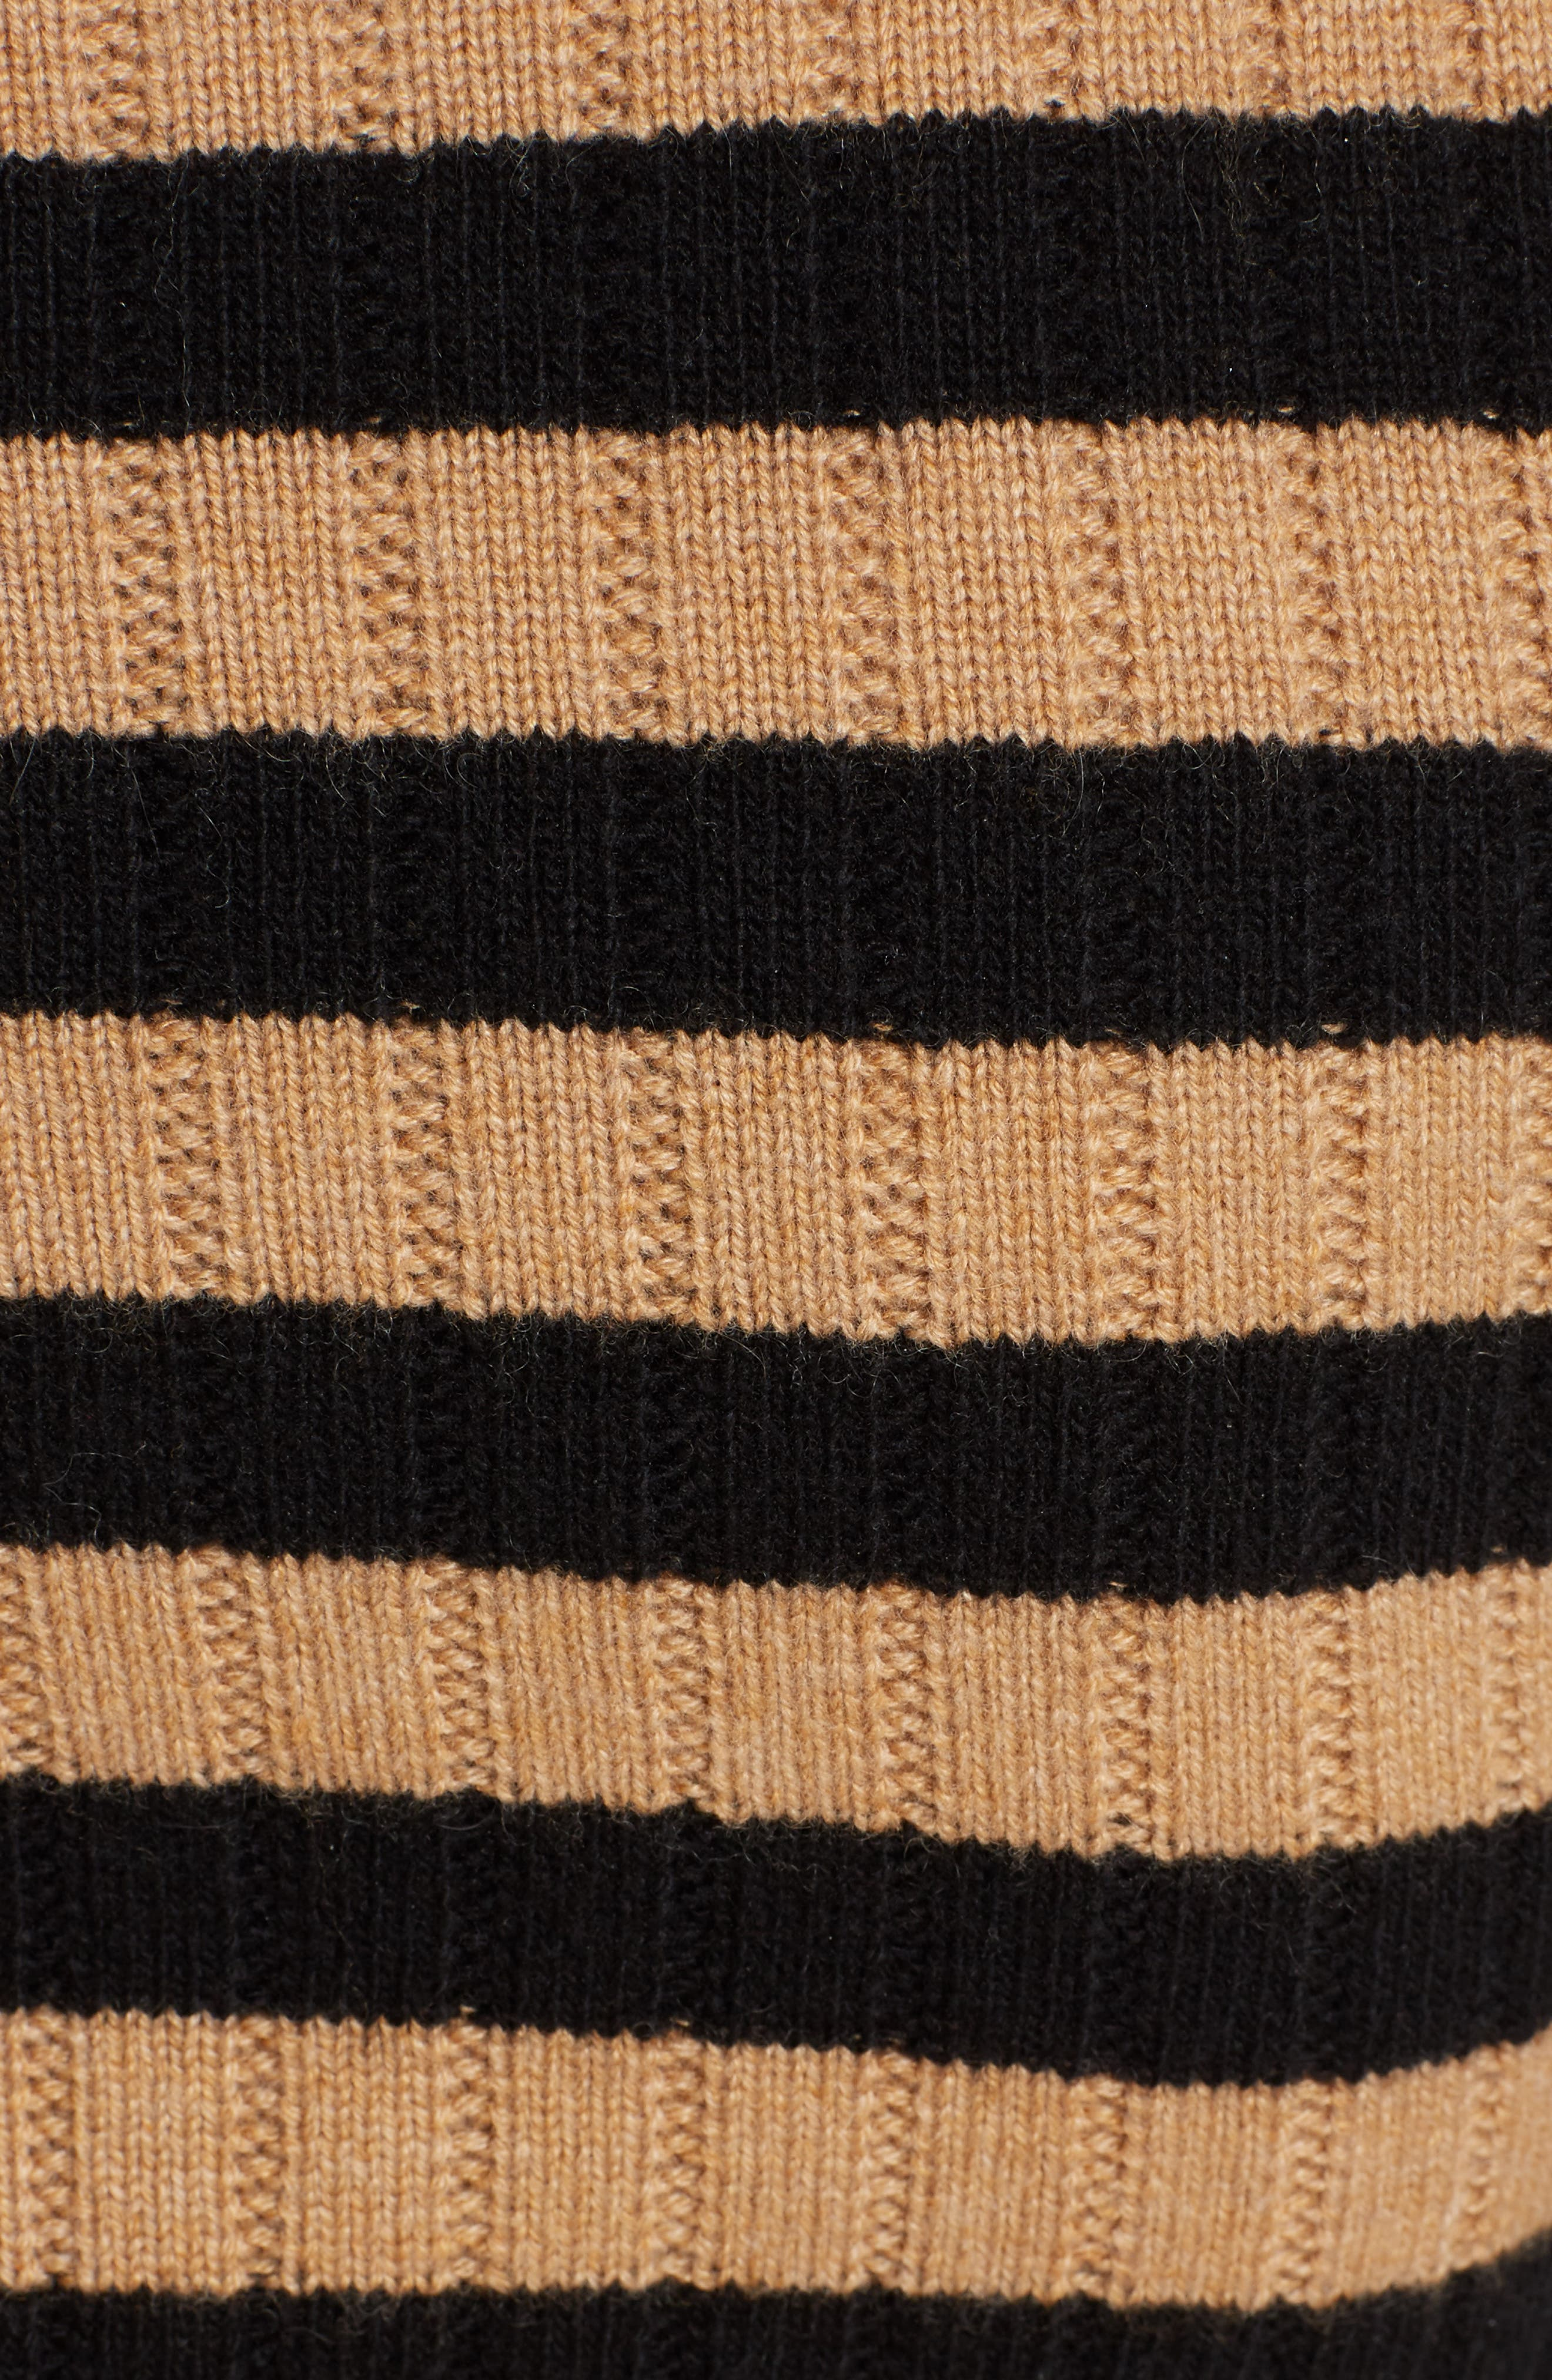 Heart Patch Stripe Wool & Cashmere Sweater,                             Alternate thumbnail 5, color,                             001